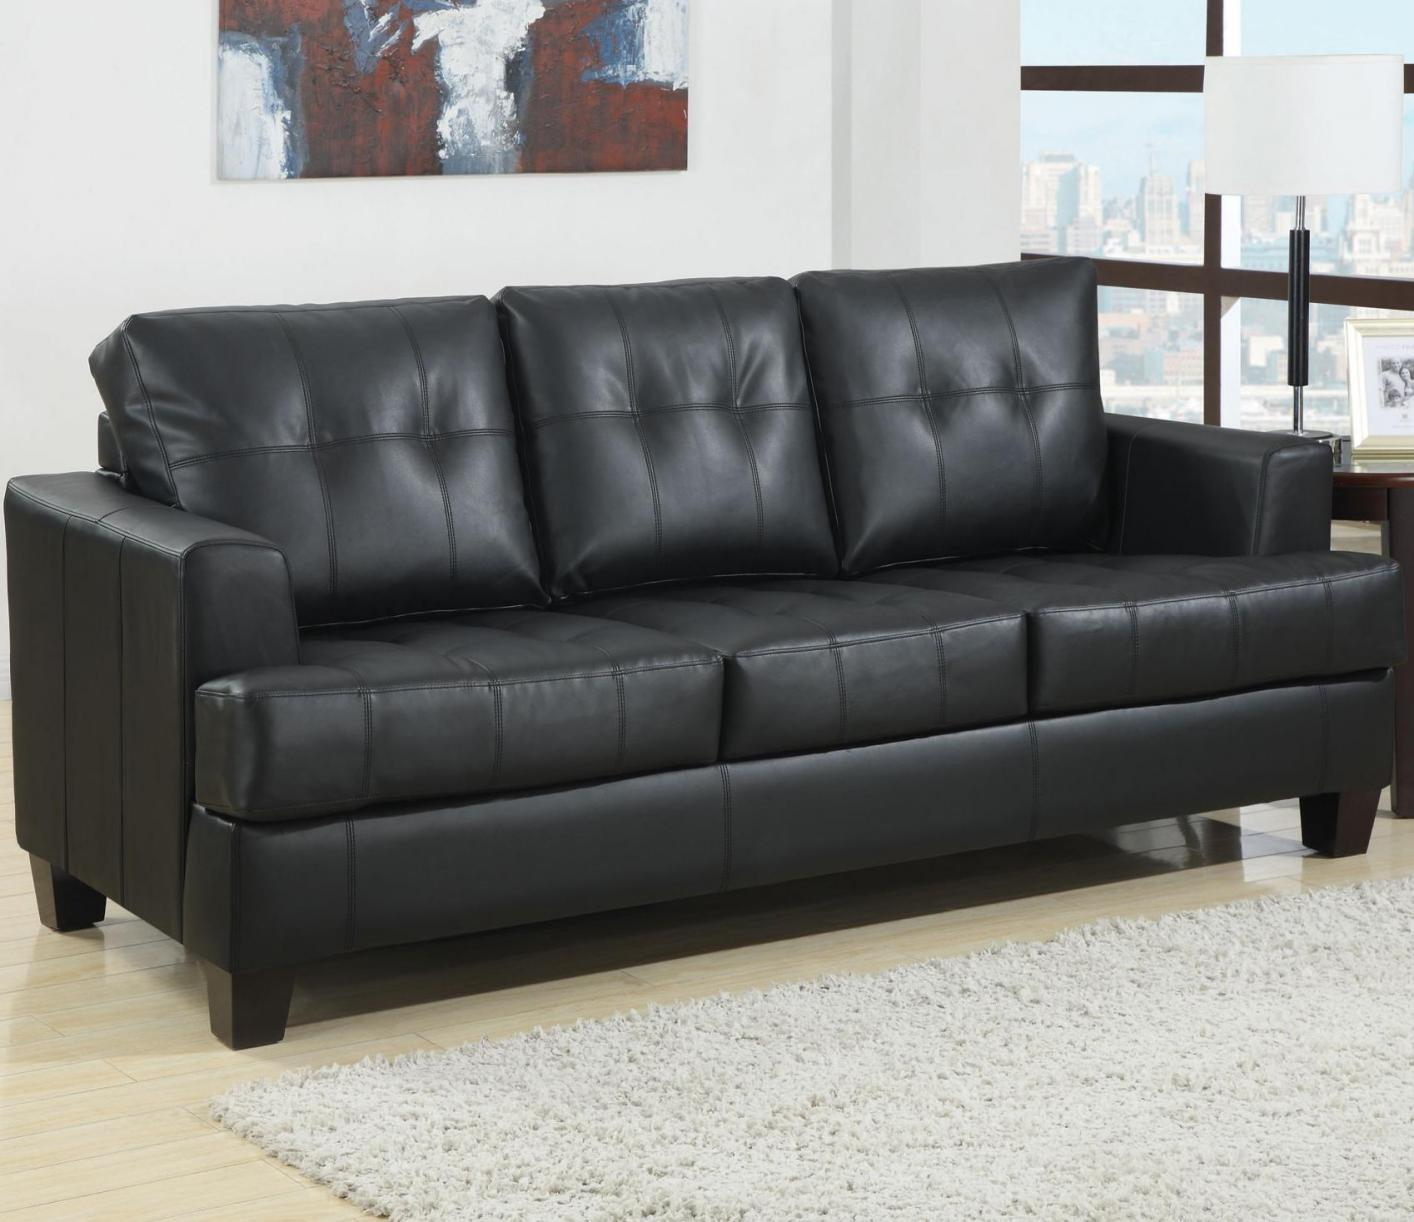 Marvelous Samuel Black Leather Sofa Bed Samuel Black Leather Sofa Bed ...